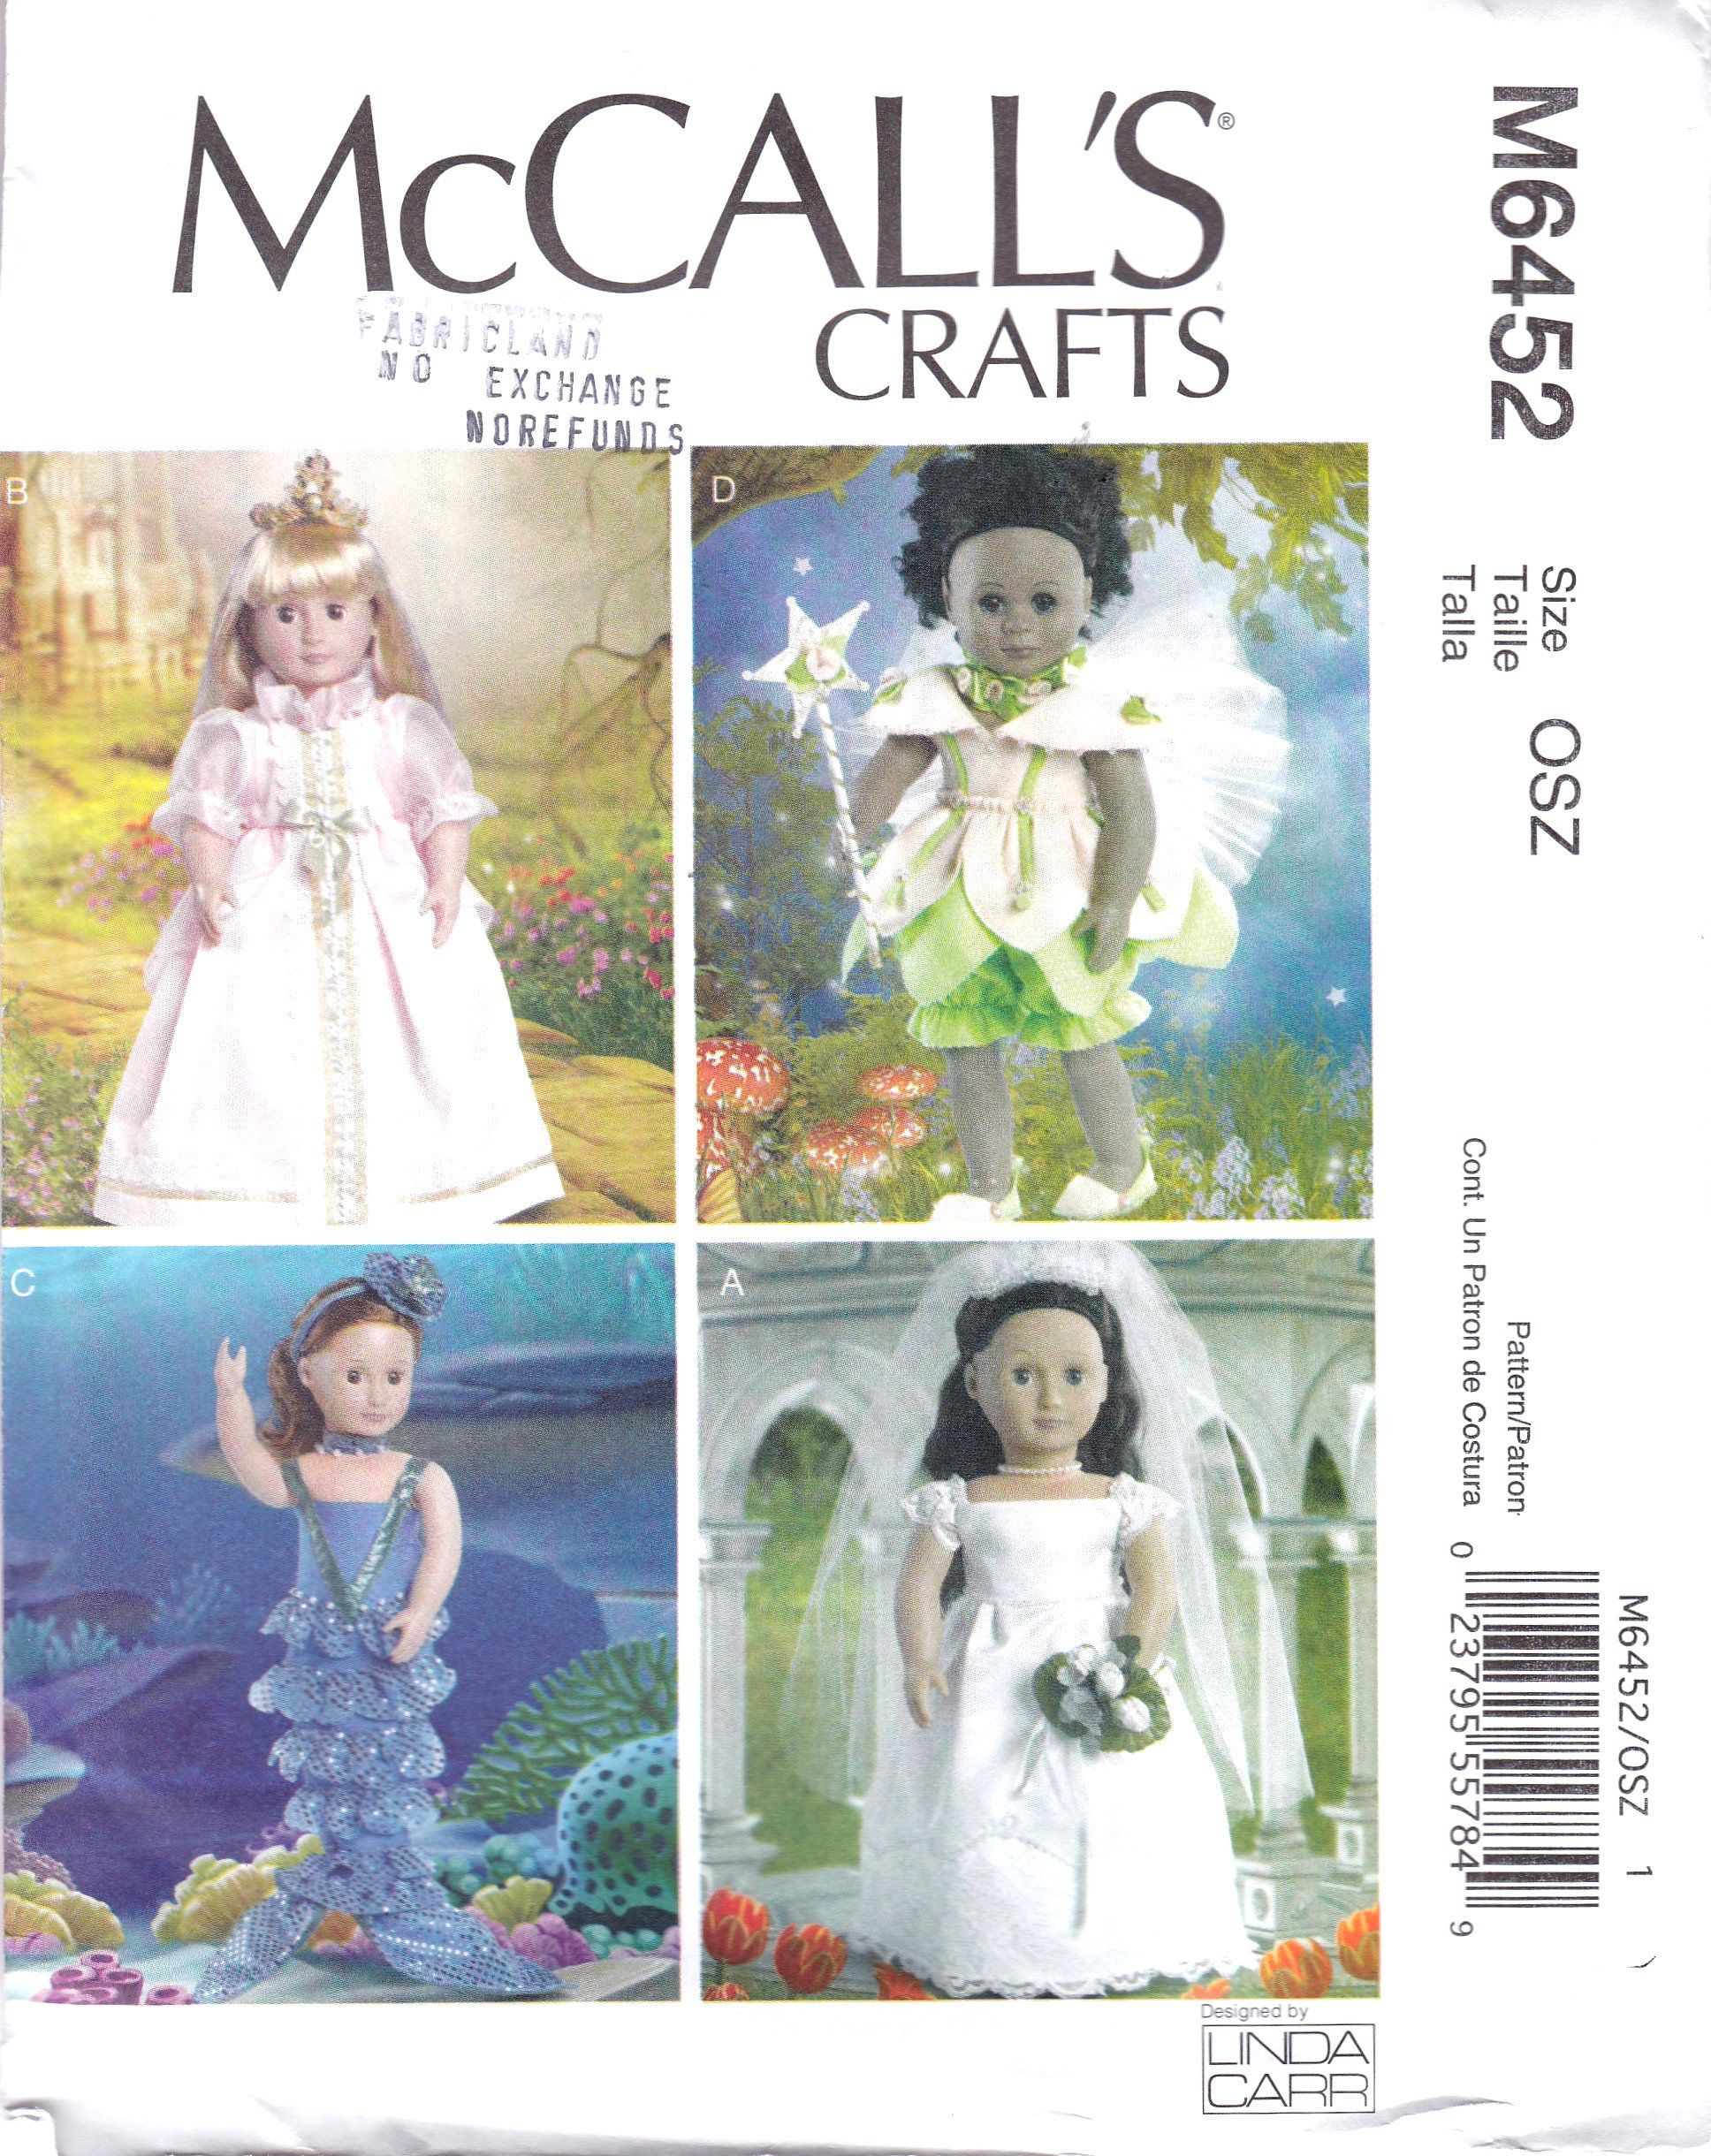 18 Inch Doll Clothes, Mermaid Gown, Wedding Gown, Fairy Outfit and princess Outfit, McCalls 6452, Linda Carr Designer Doll Clothes, Uncut #18inchdollsandclothes